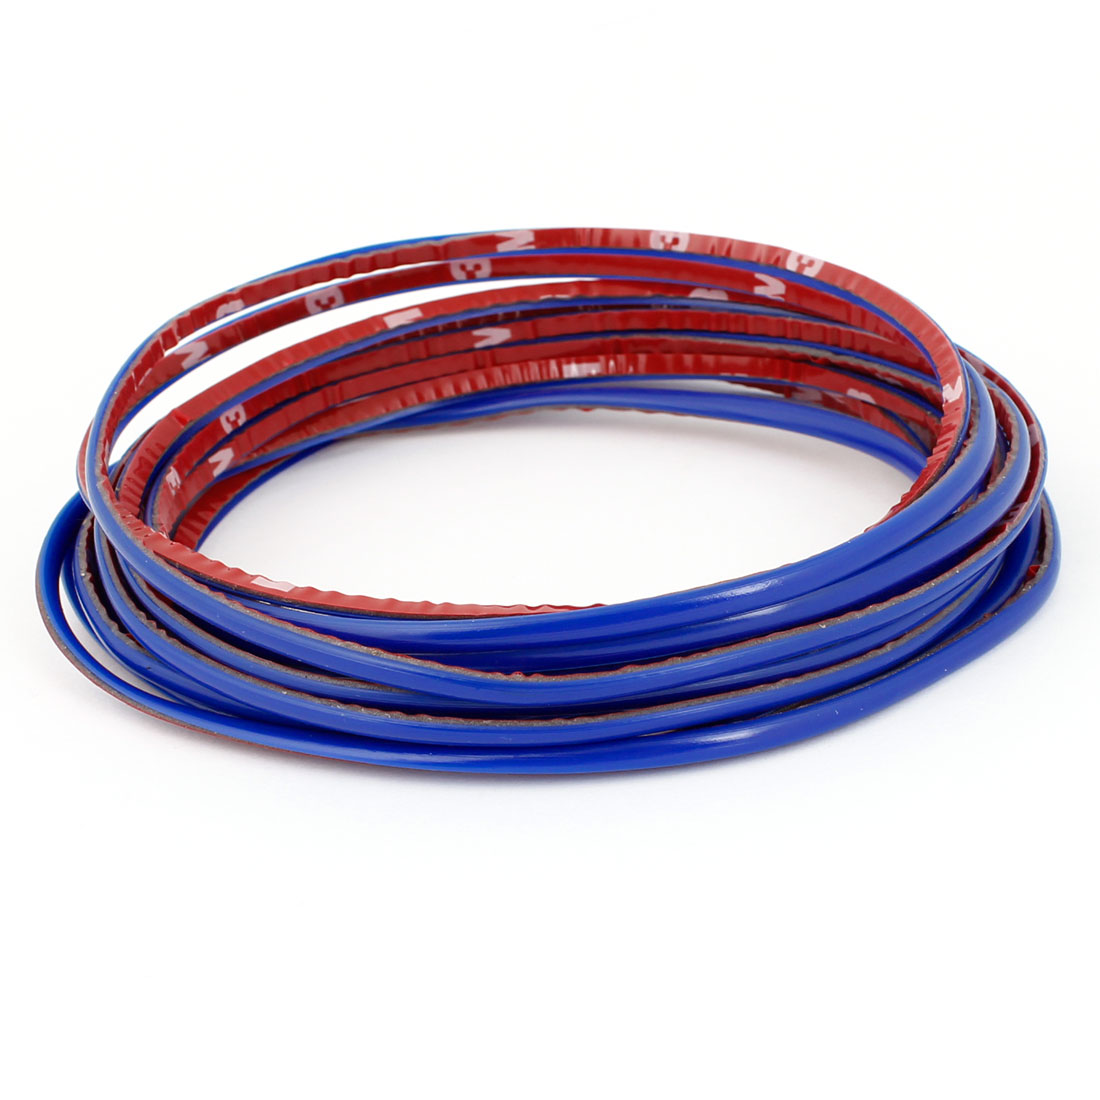 4 Meters Royal Blue Soft Plastic Flexible Strip Sticker for Car